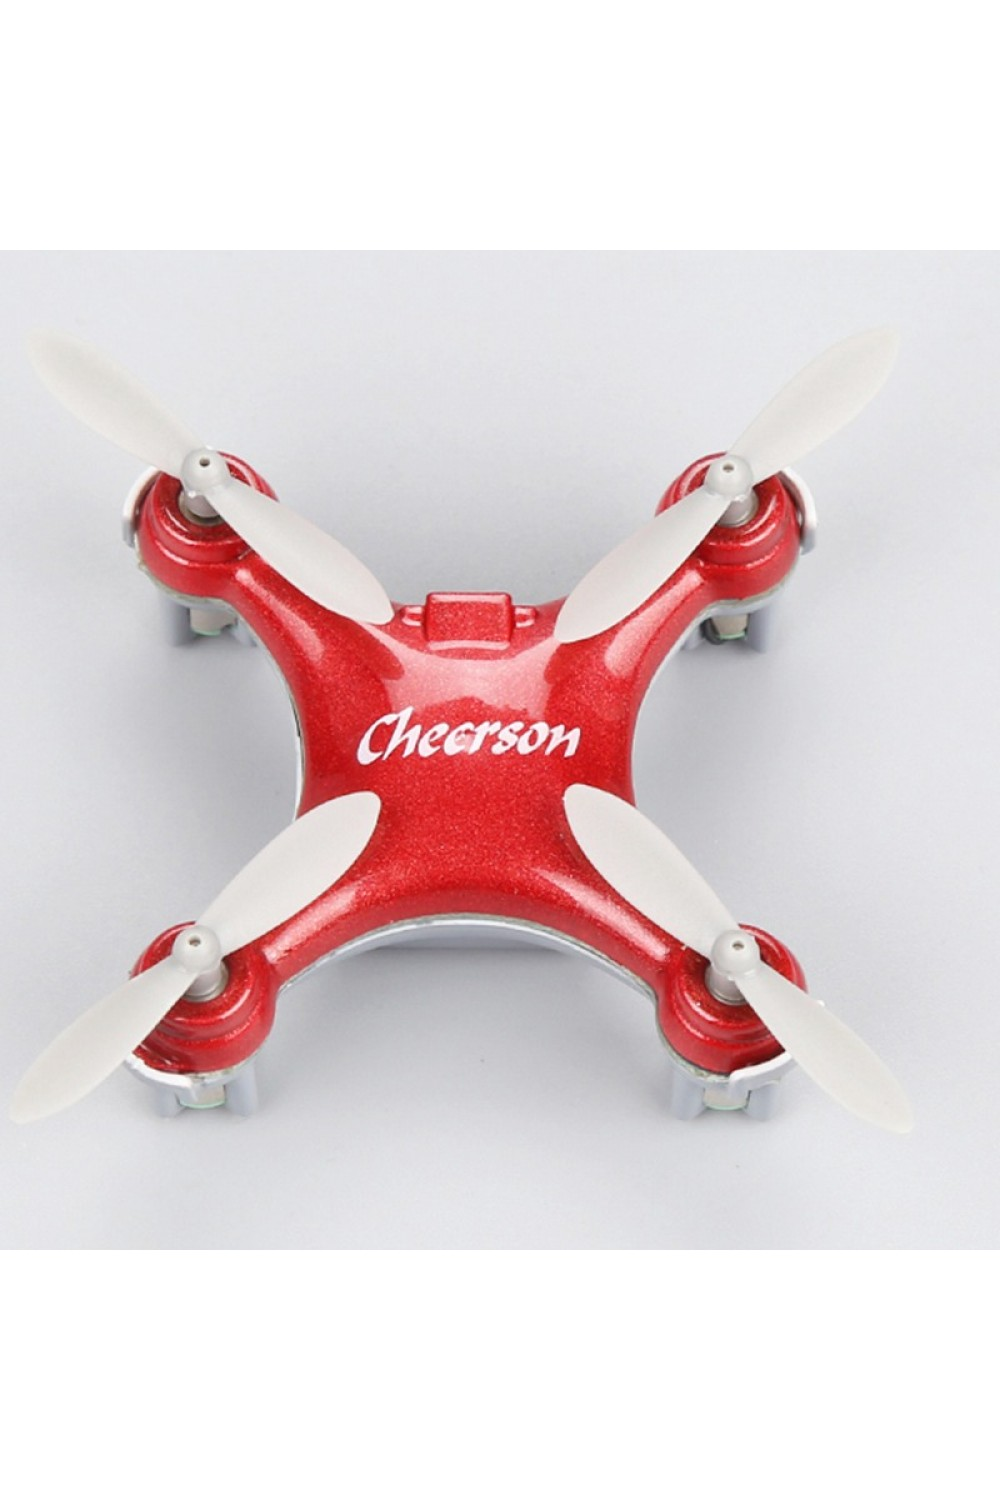 Cheerson Cx-10se Mini Drone Colorful Quadcopter Rc Helicopter Nano Drons Remote Control Toys For Children Copter Vs Cx10 Cx-10w